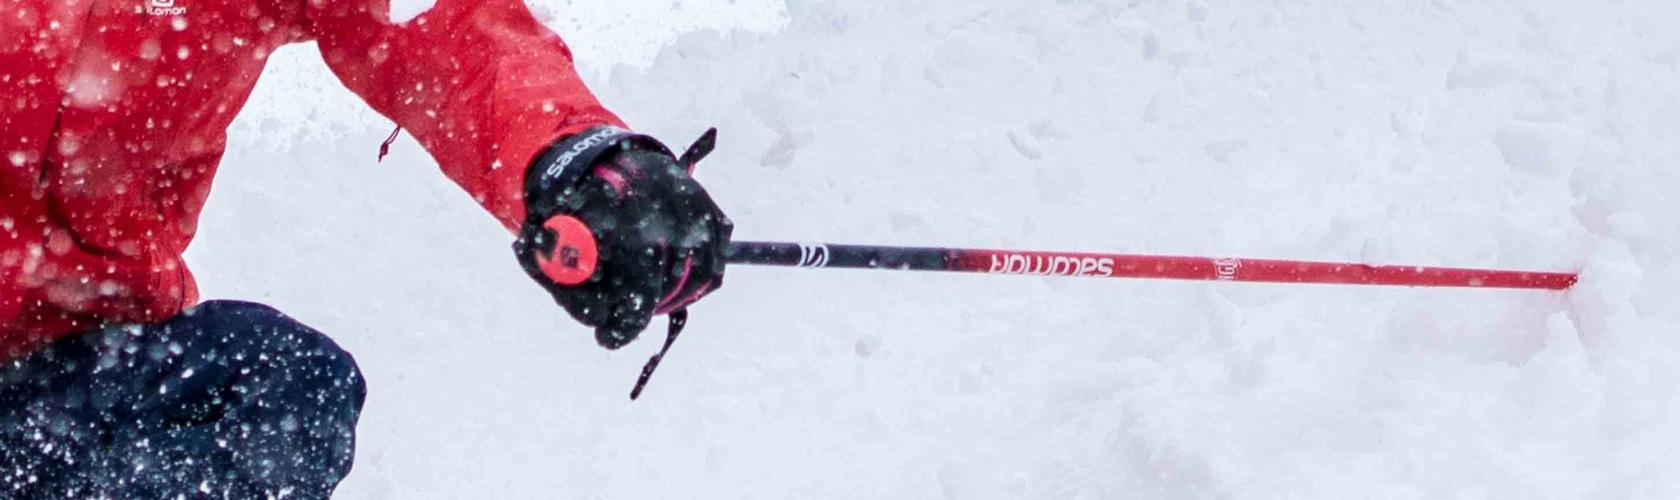 57fa8af6c3 How to choose the right size ski poles